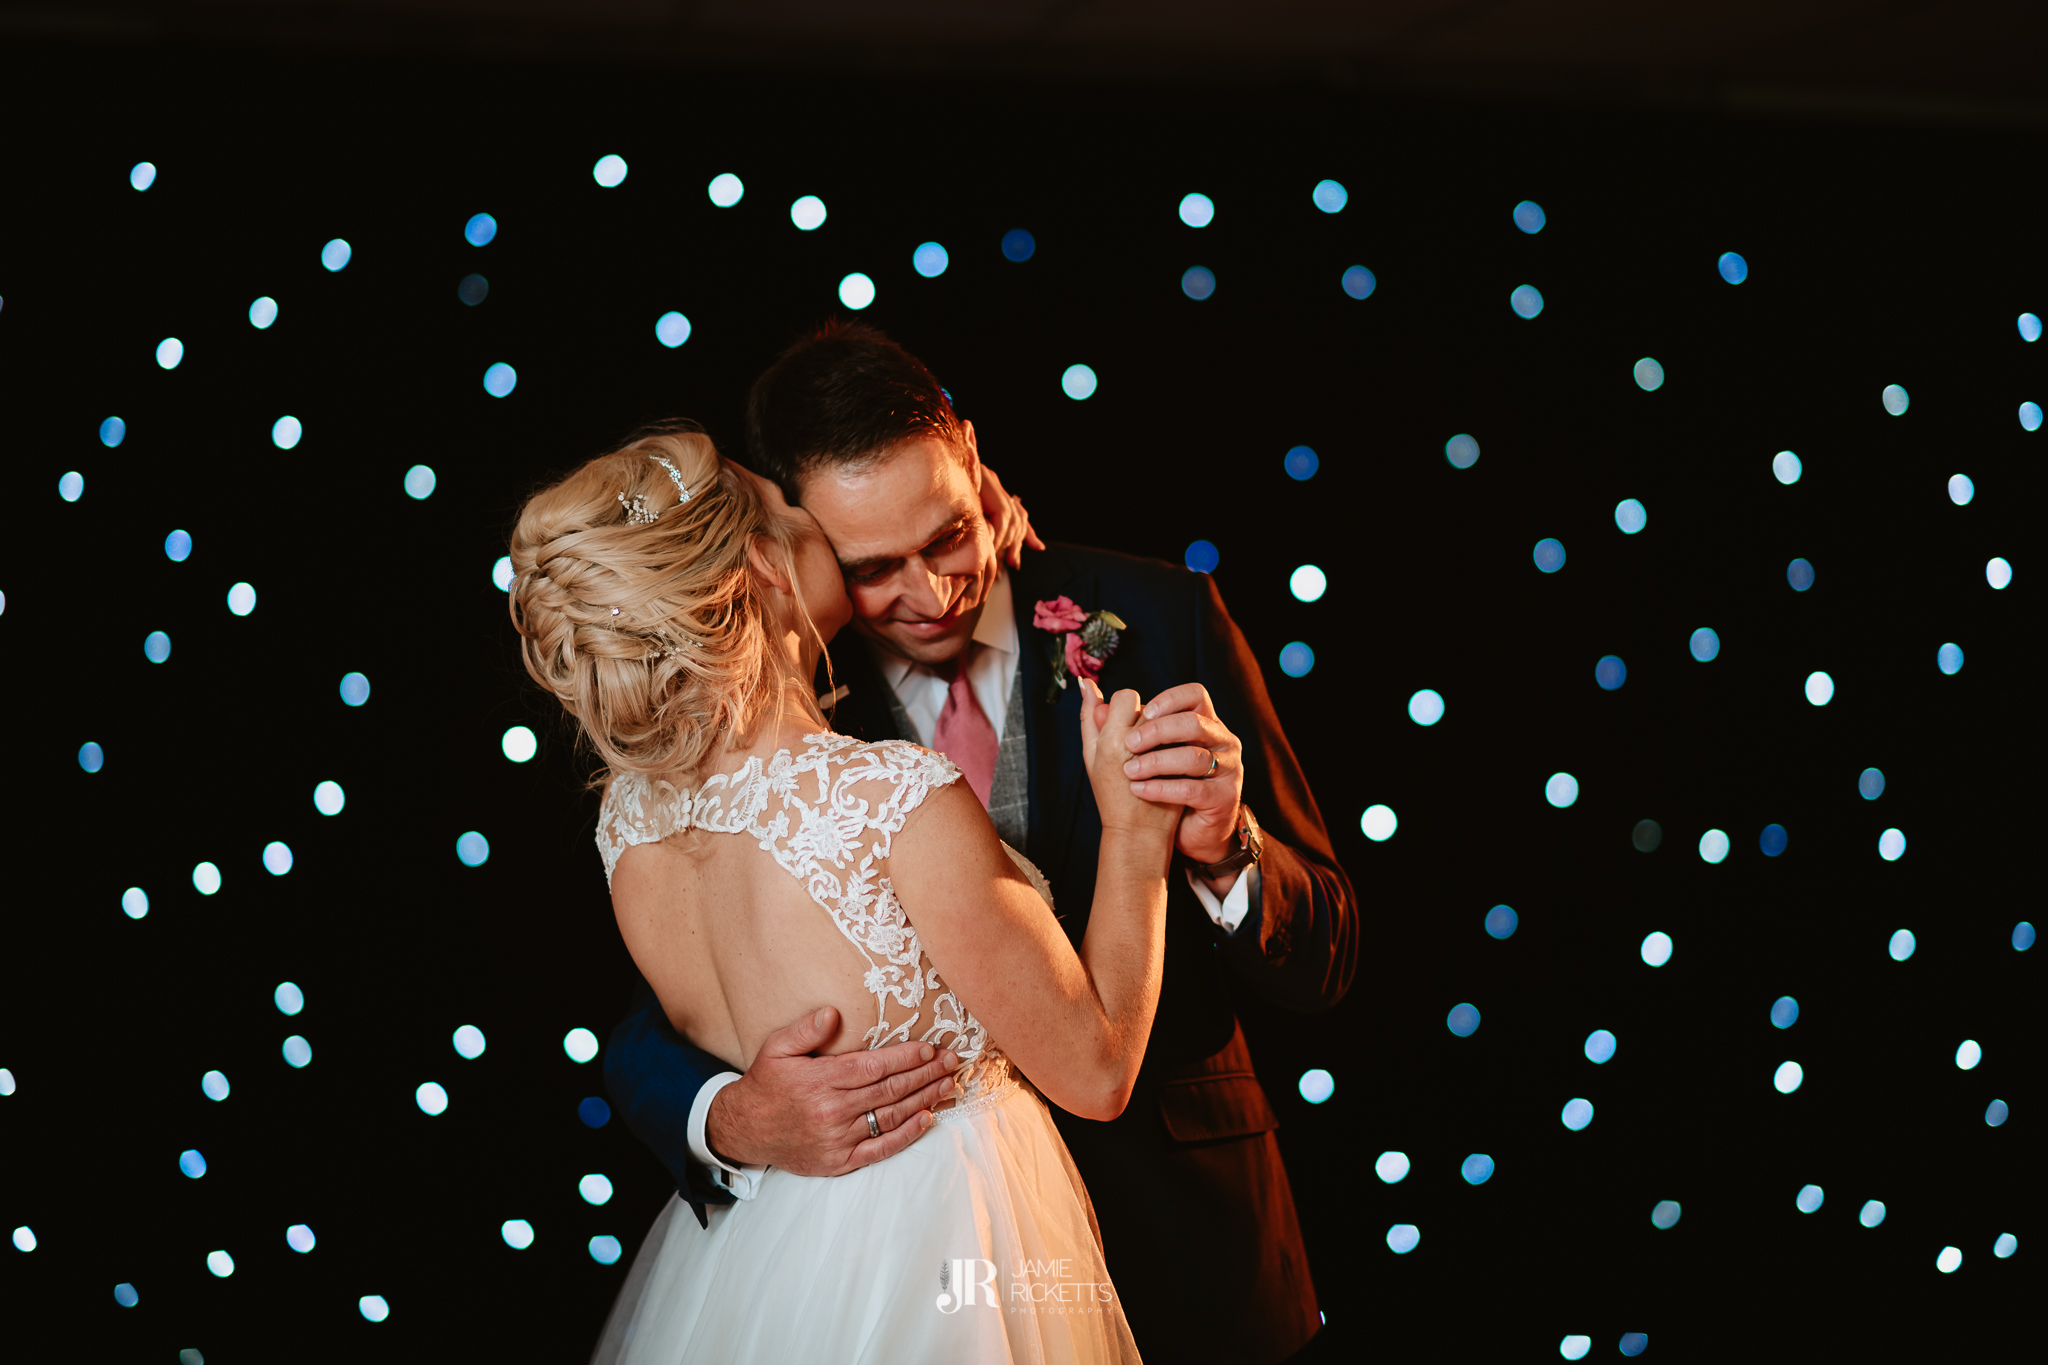 Wroxeter-Hotel-Wedding-Photography-In-Shropshire-By-Shropshire-Wedding-Photographer-Jamie-Ricketts-218.JPG